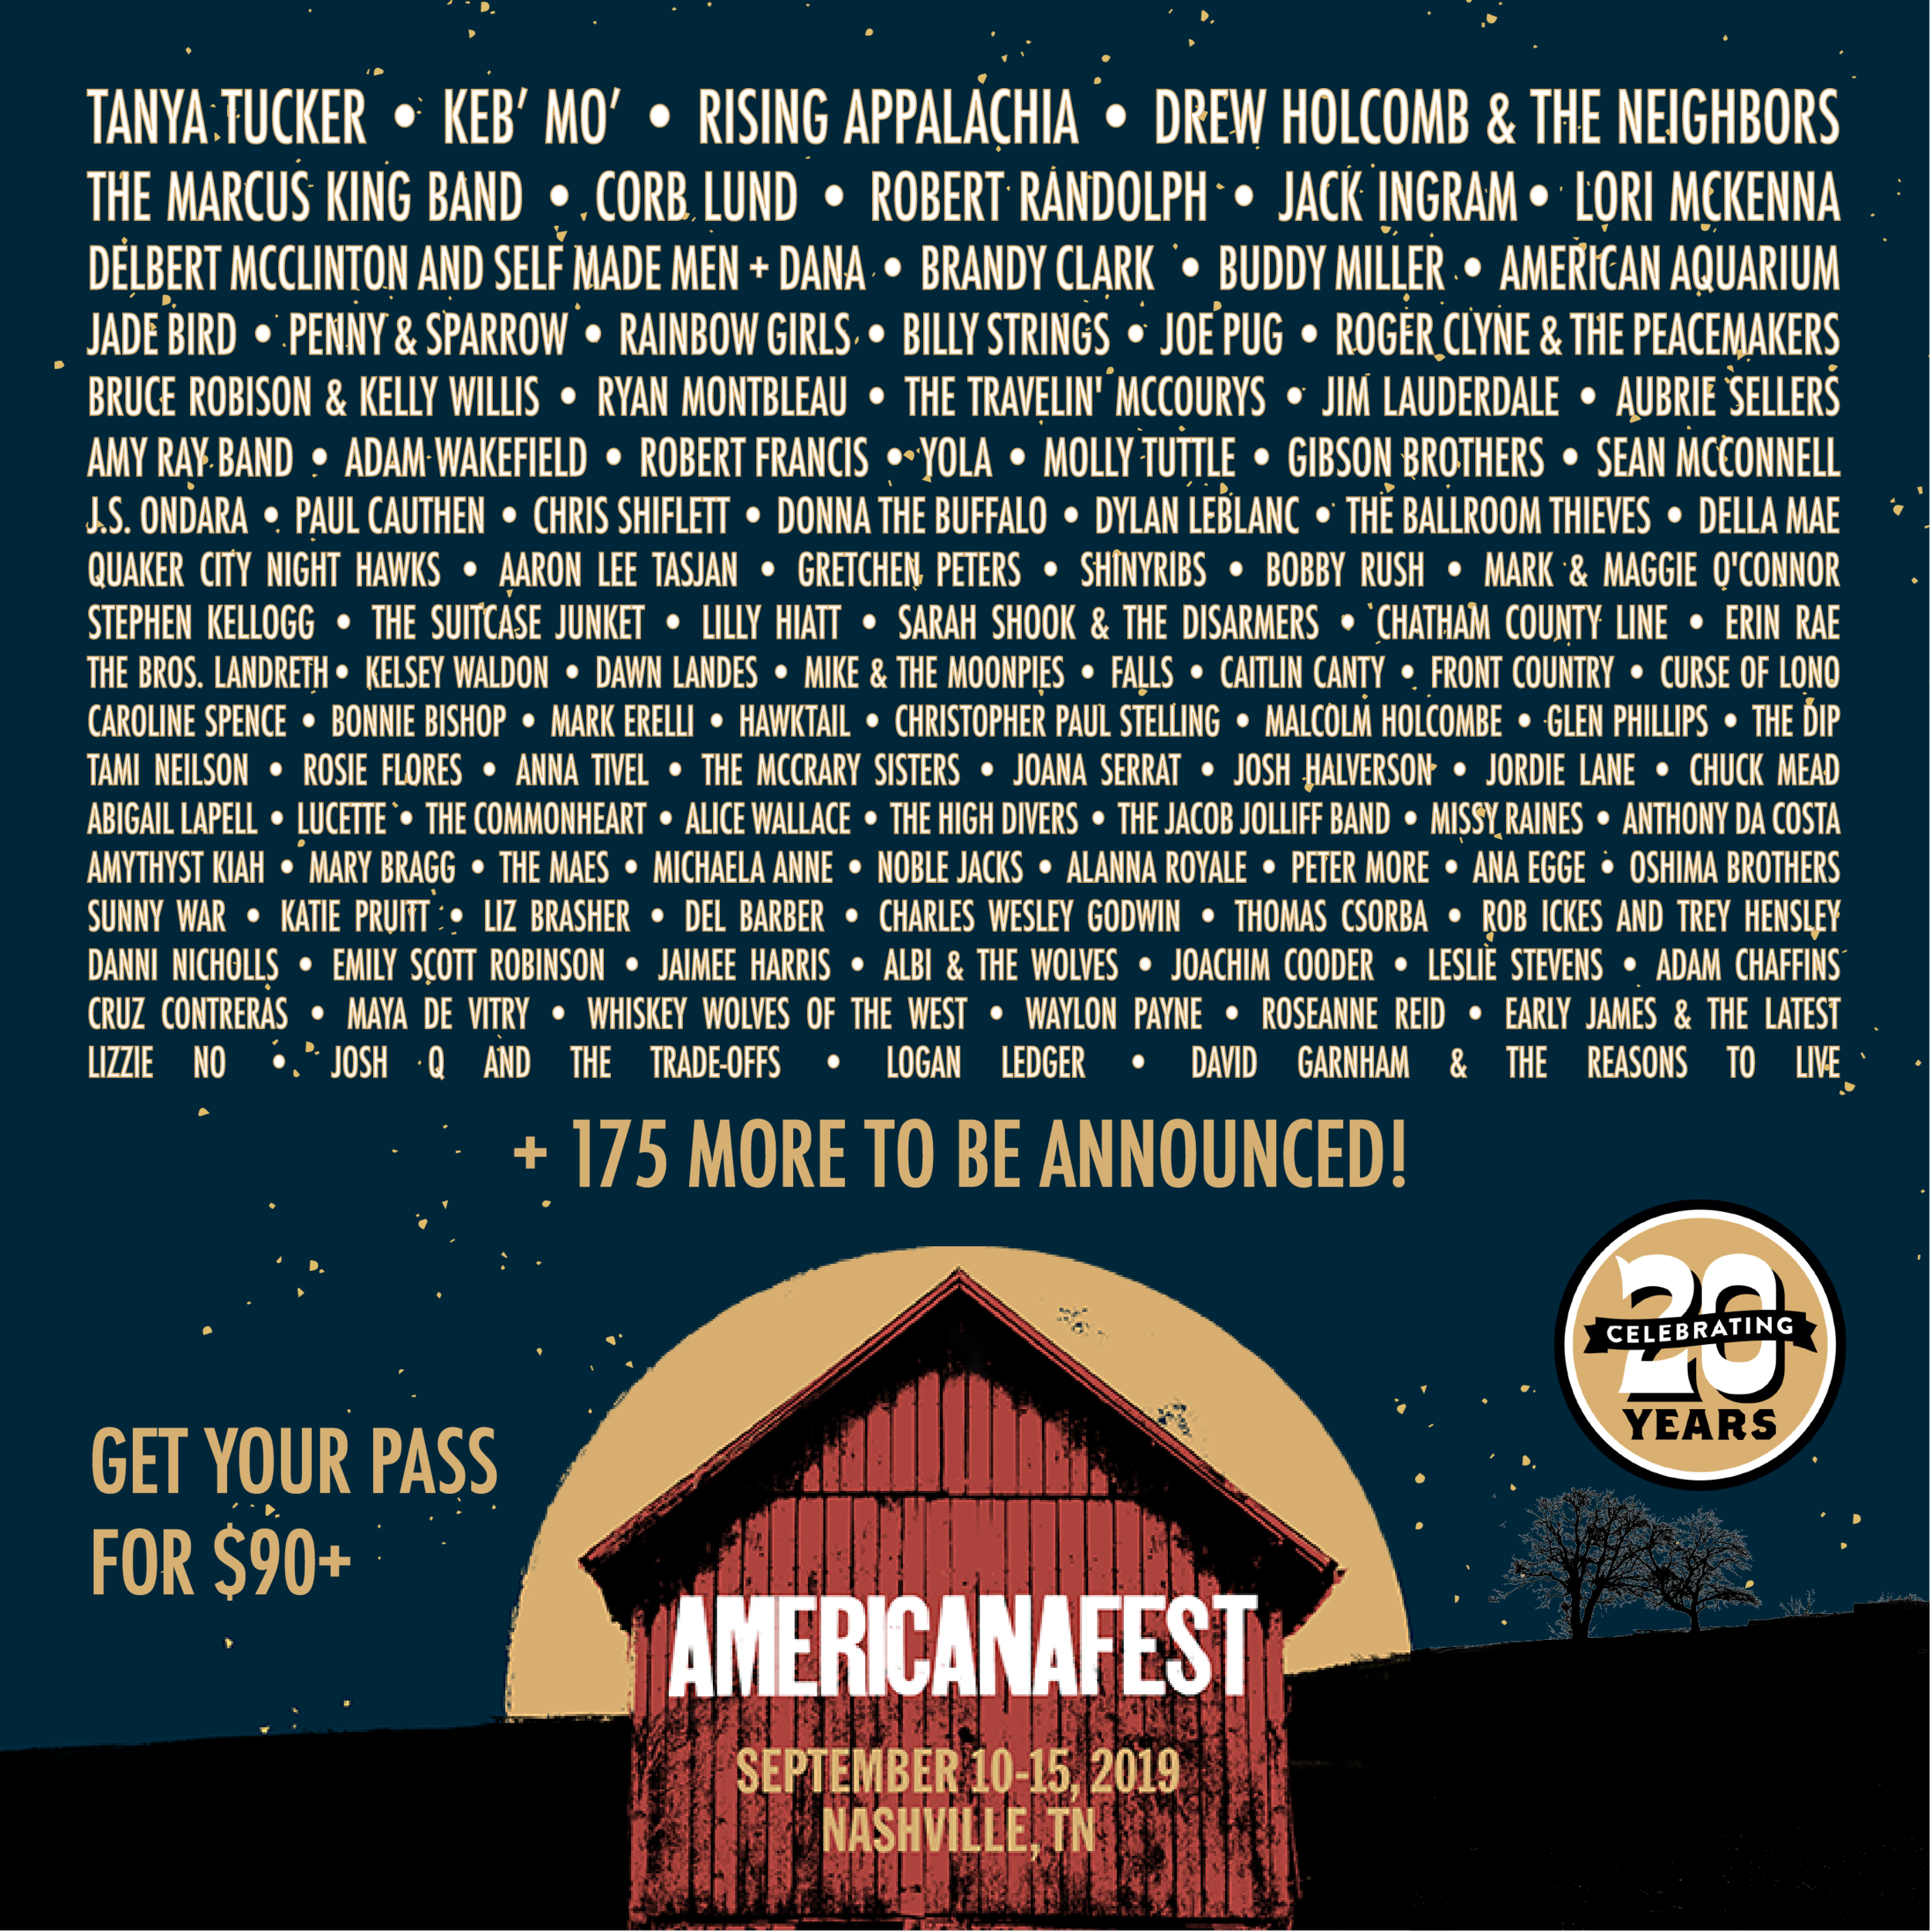 AMERICANAFEST lineup 5-30-19 announcement-01.png